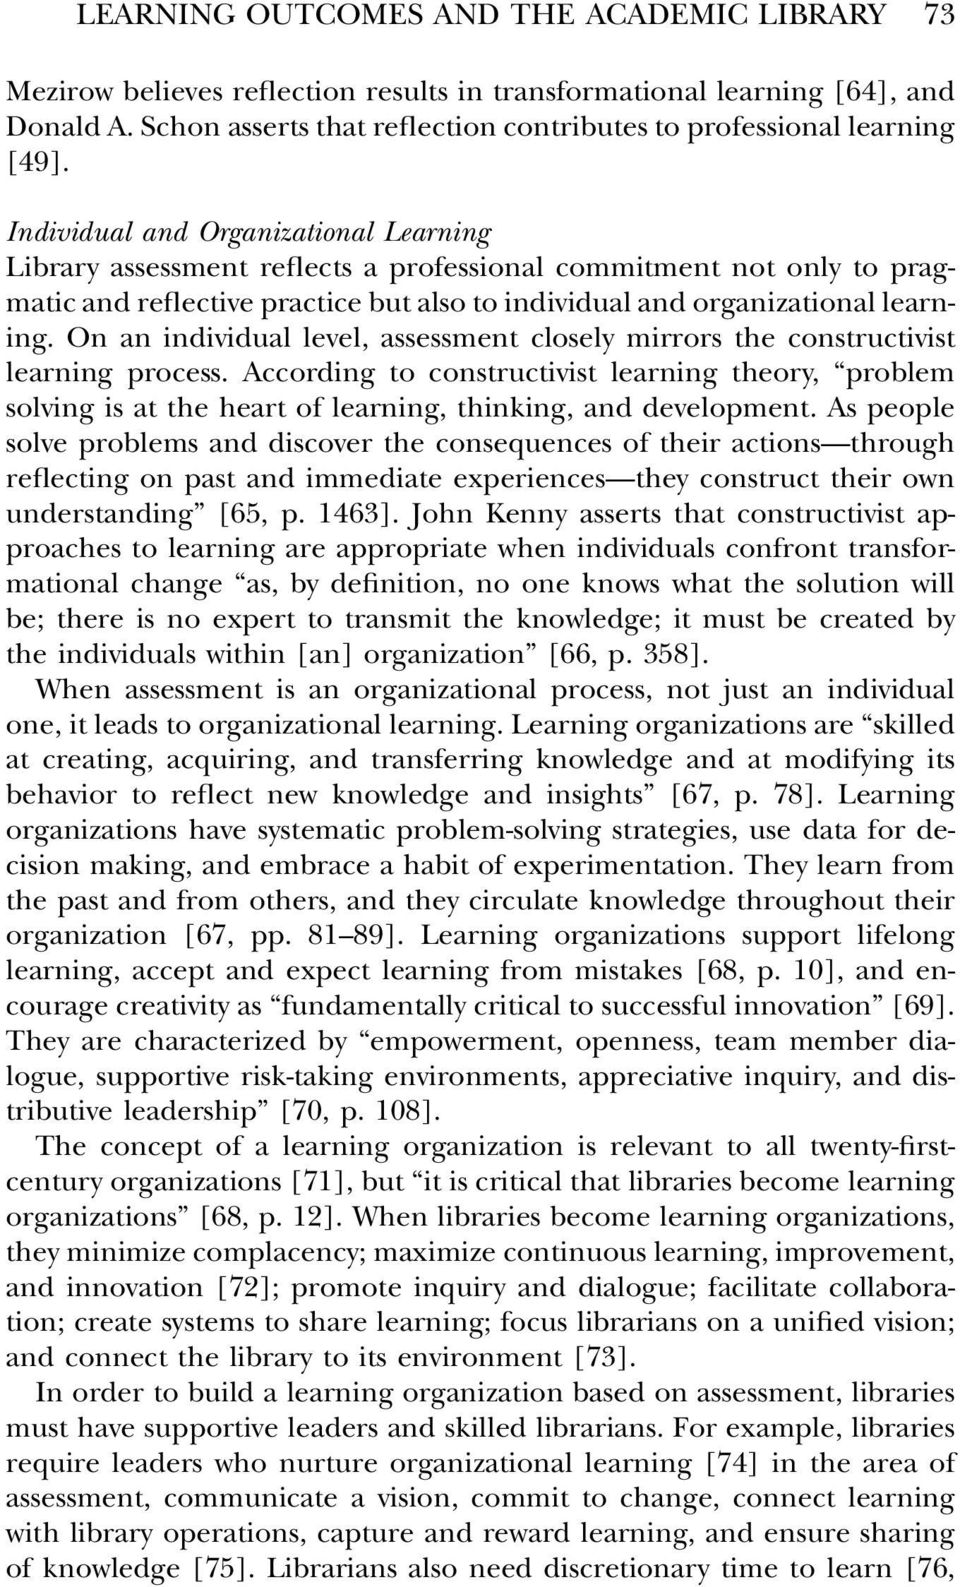 Individual and Organizational Learning Library assessment reflects a professional commitment not only to pragmatic and reflective practice but also to individual and organizational learning.